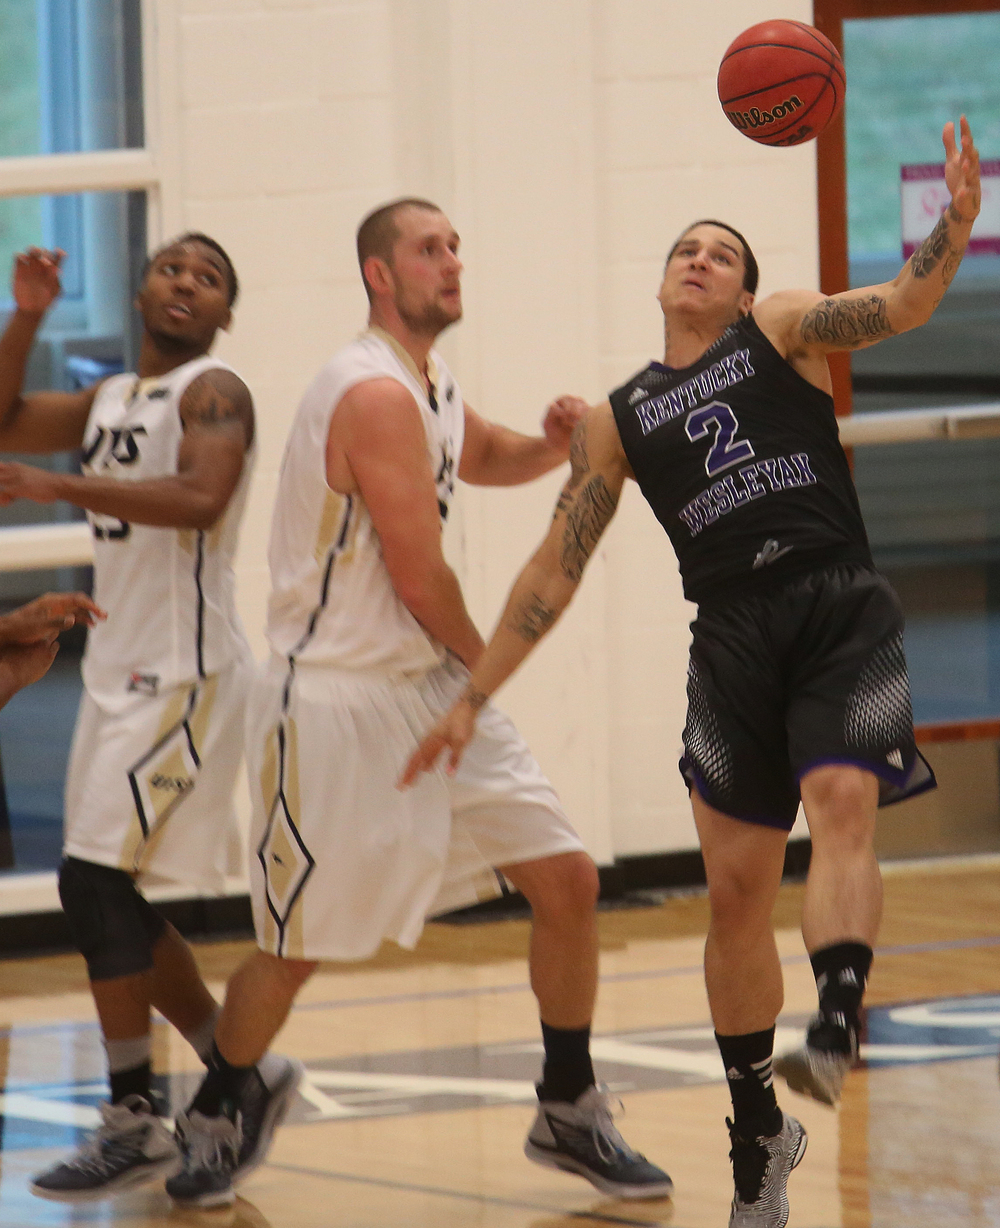 Panthers player Tre Boutilier tries to grab a rebound under pressure from Stars player Dylan Sparkman. The Kentucky Wesleyan Panthers defeated the UIS Prairie Stars 80-61 in men's basketball action at the TRAC center on the UIS campus on Sunday, Dec. 14, 2014. David Spencer/The State Journal-Register